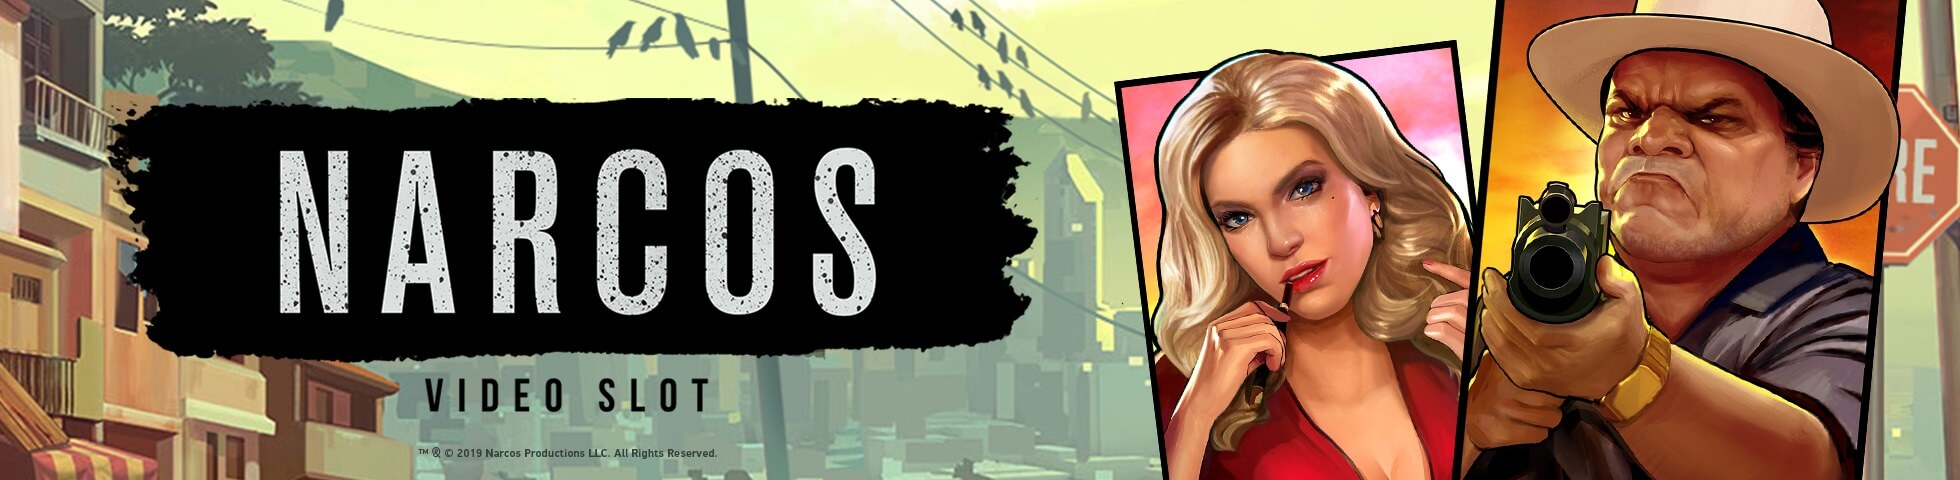 narcos slot review allgamblingsites.com